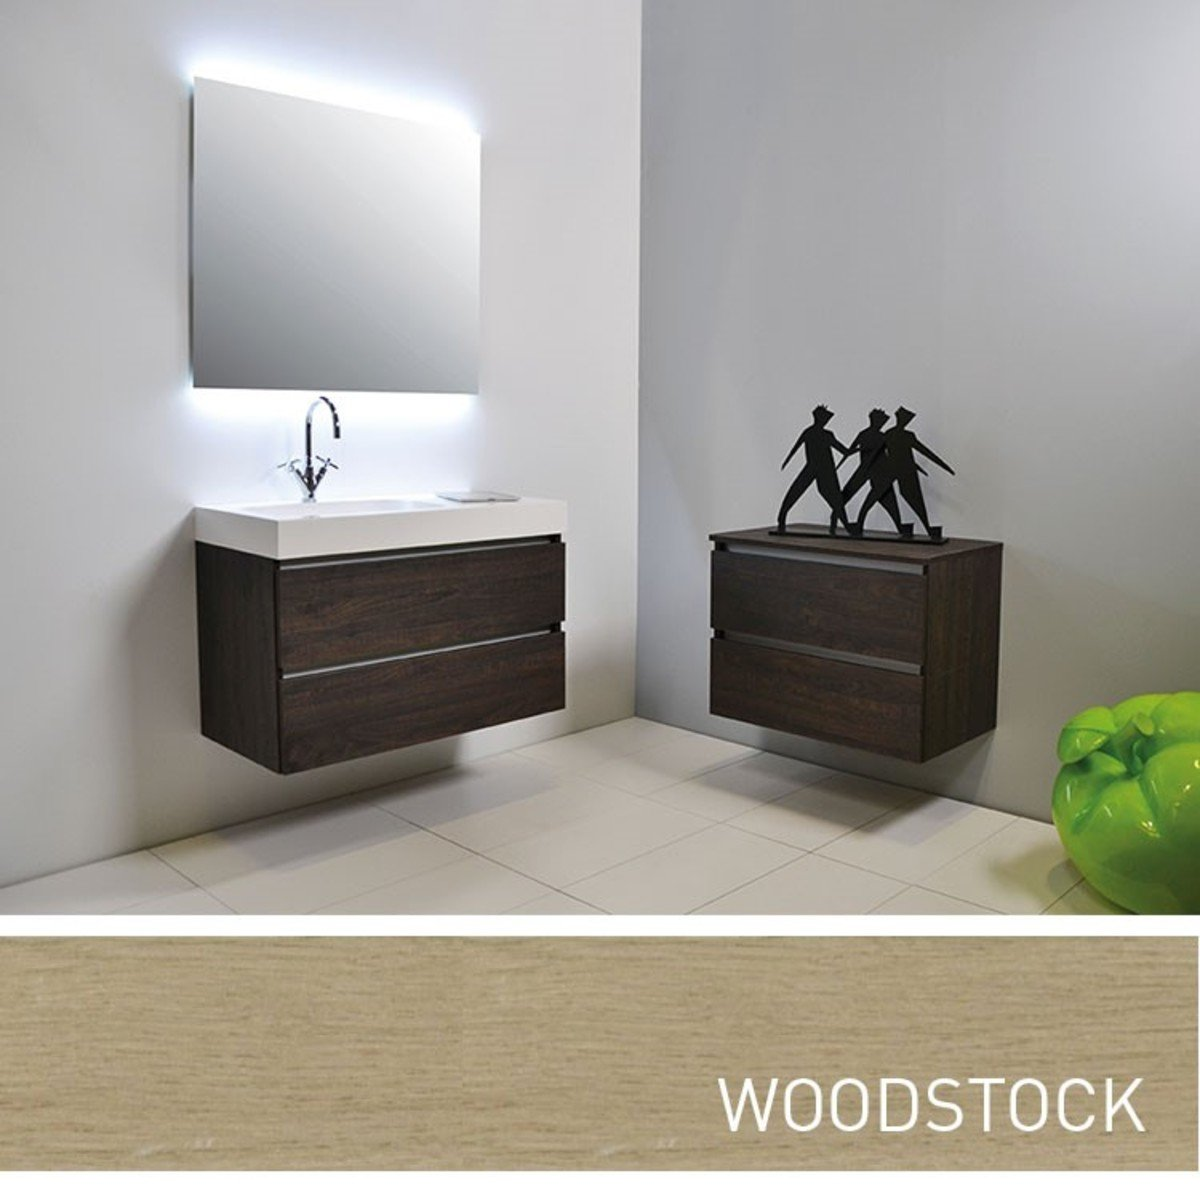 ink tablet set de meubles salle de bain 90cm avec armoire miroir sans poign e woodstock. Black Bedroom Furniture Sets. Home Design Ideas